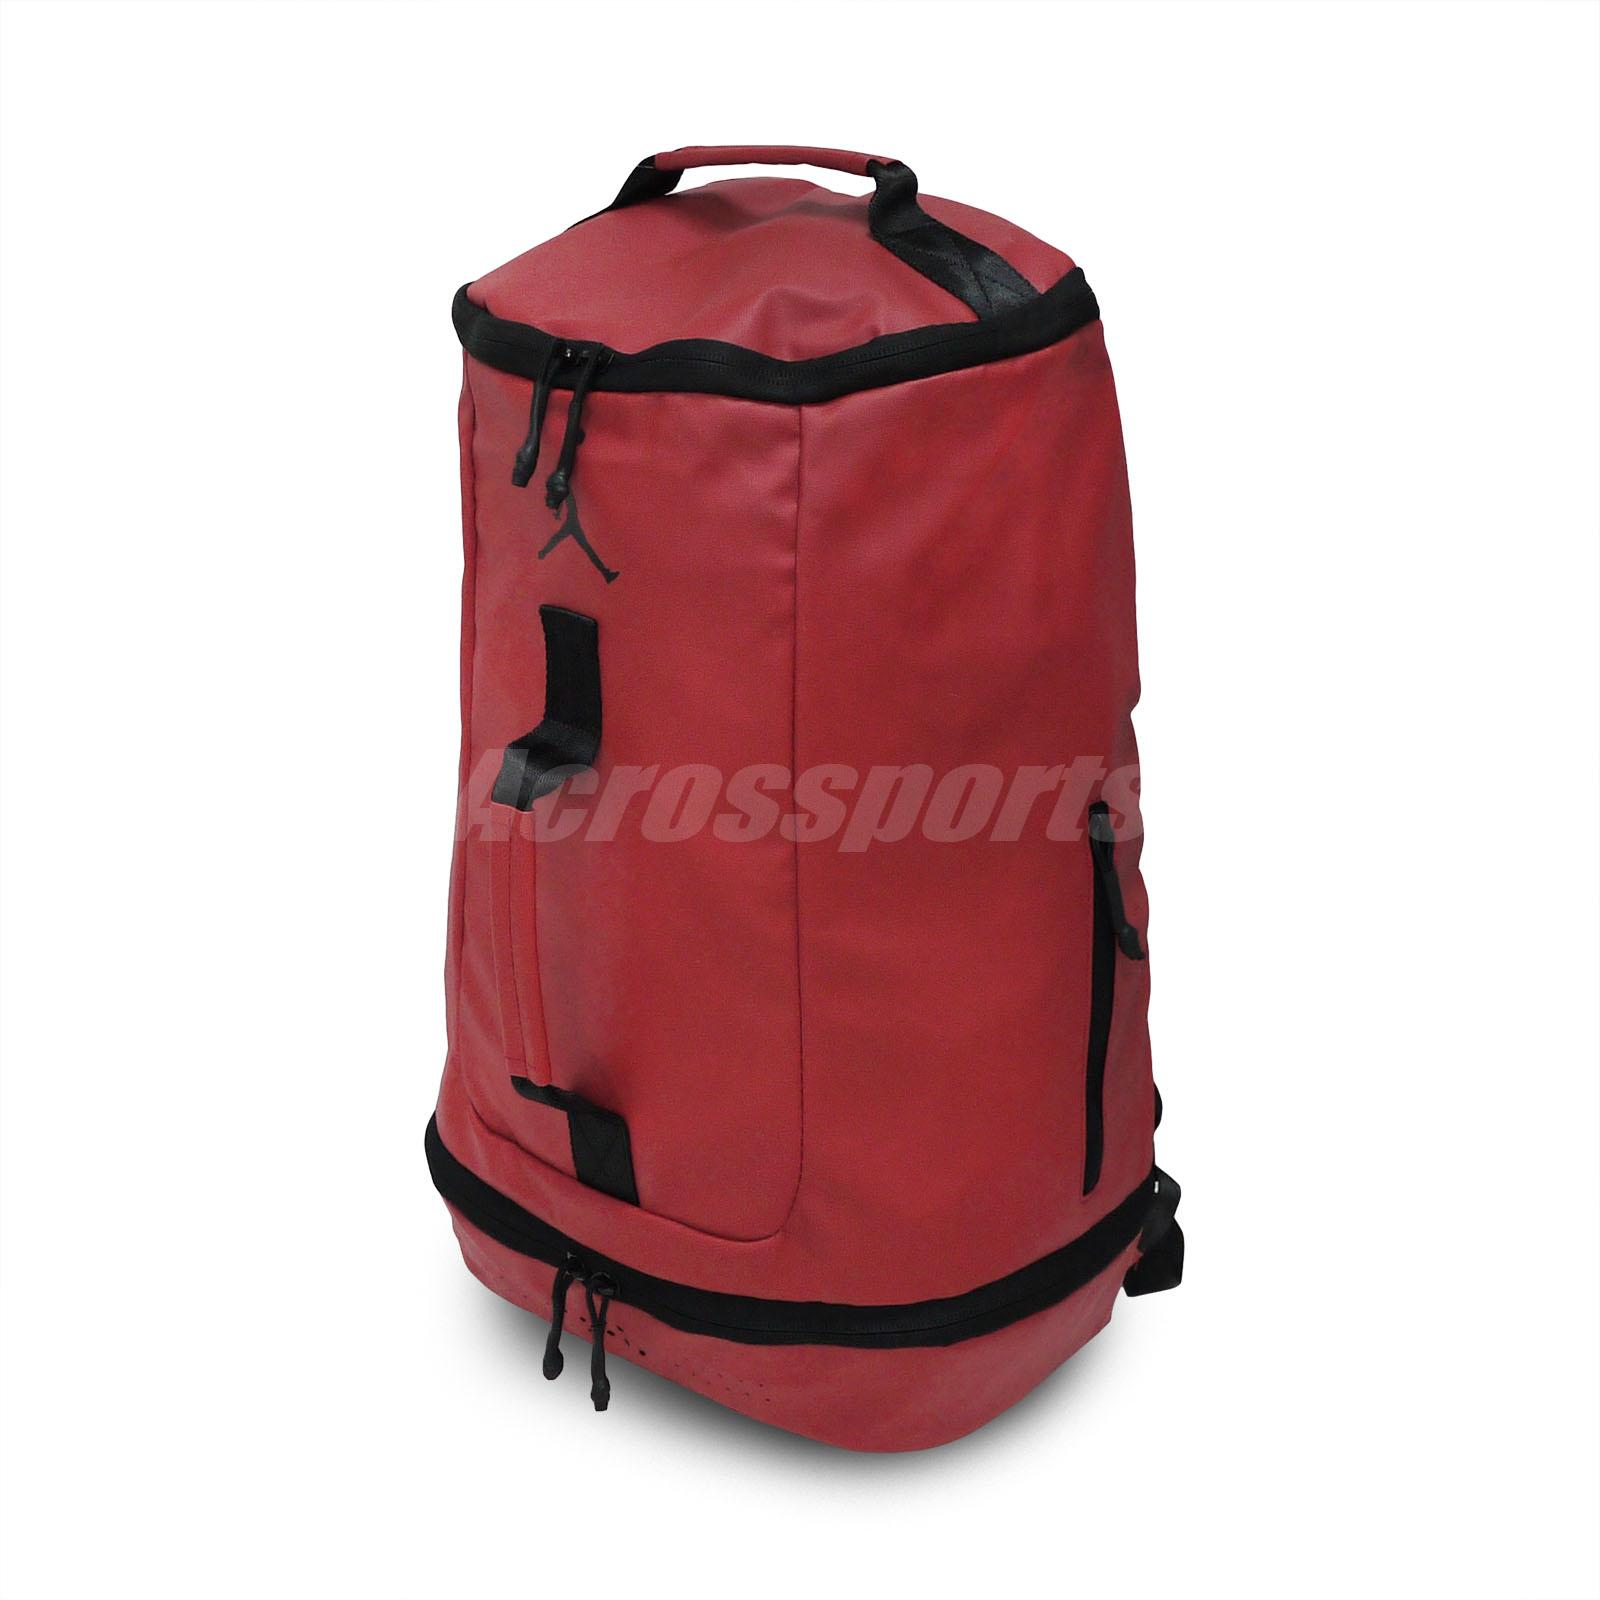 8e16dbf11f0 Details about Nike Jordan Off Court High Rise Red Laptop Water Resistant  Backpack 9A1941-R78